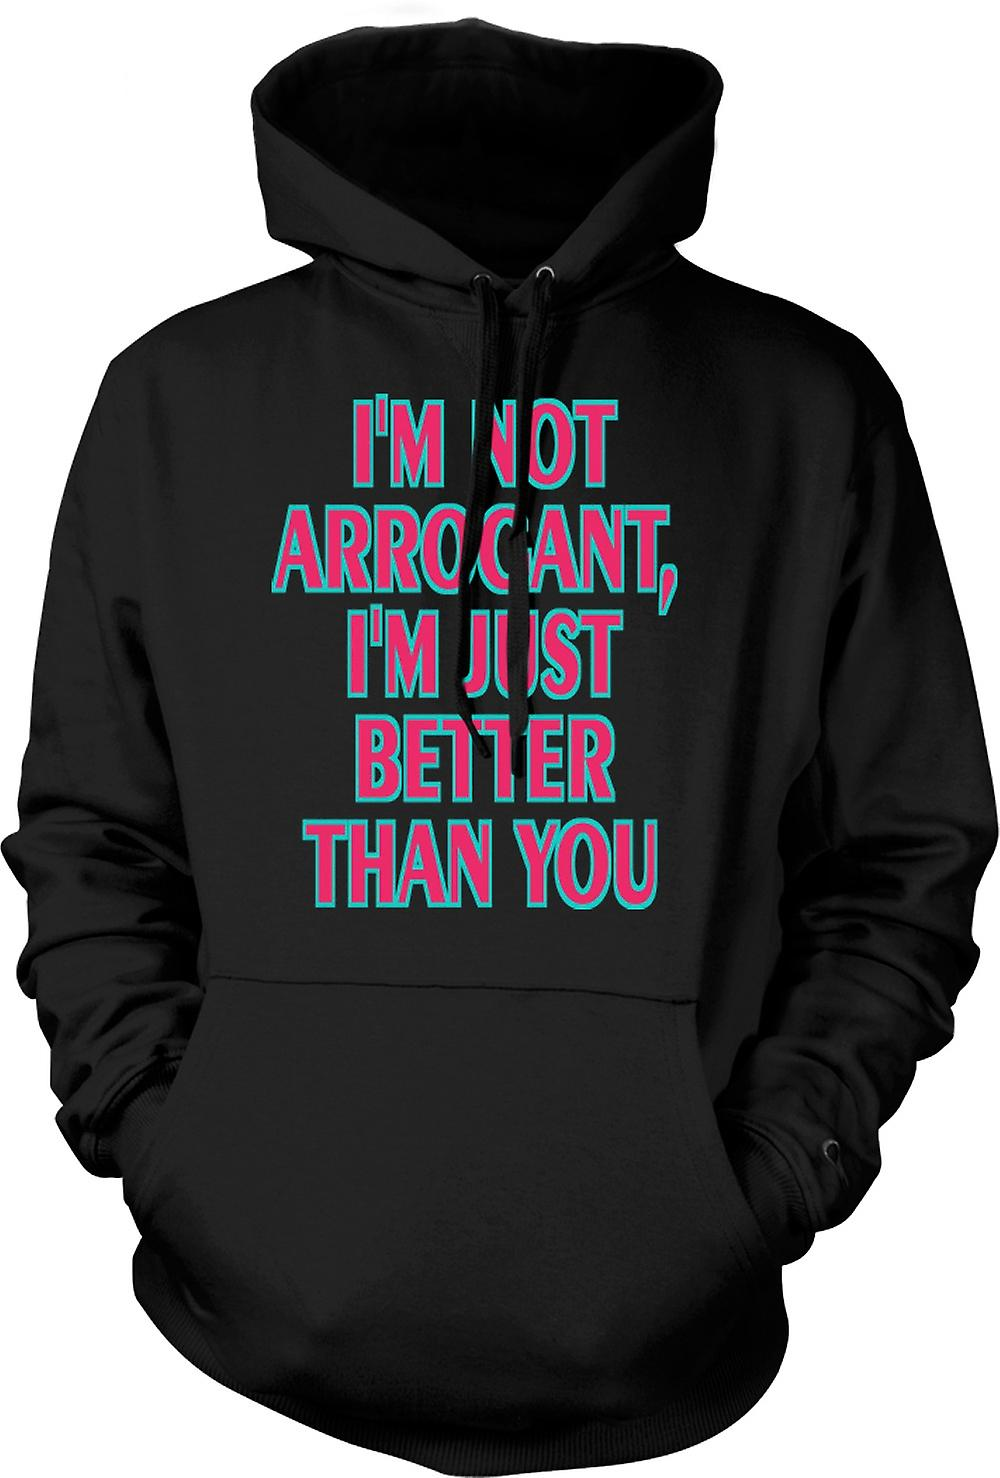 Mens Hoodie - I'M NOT ARROGANT, I'M JUST BETTER THAN YOU